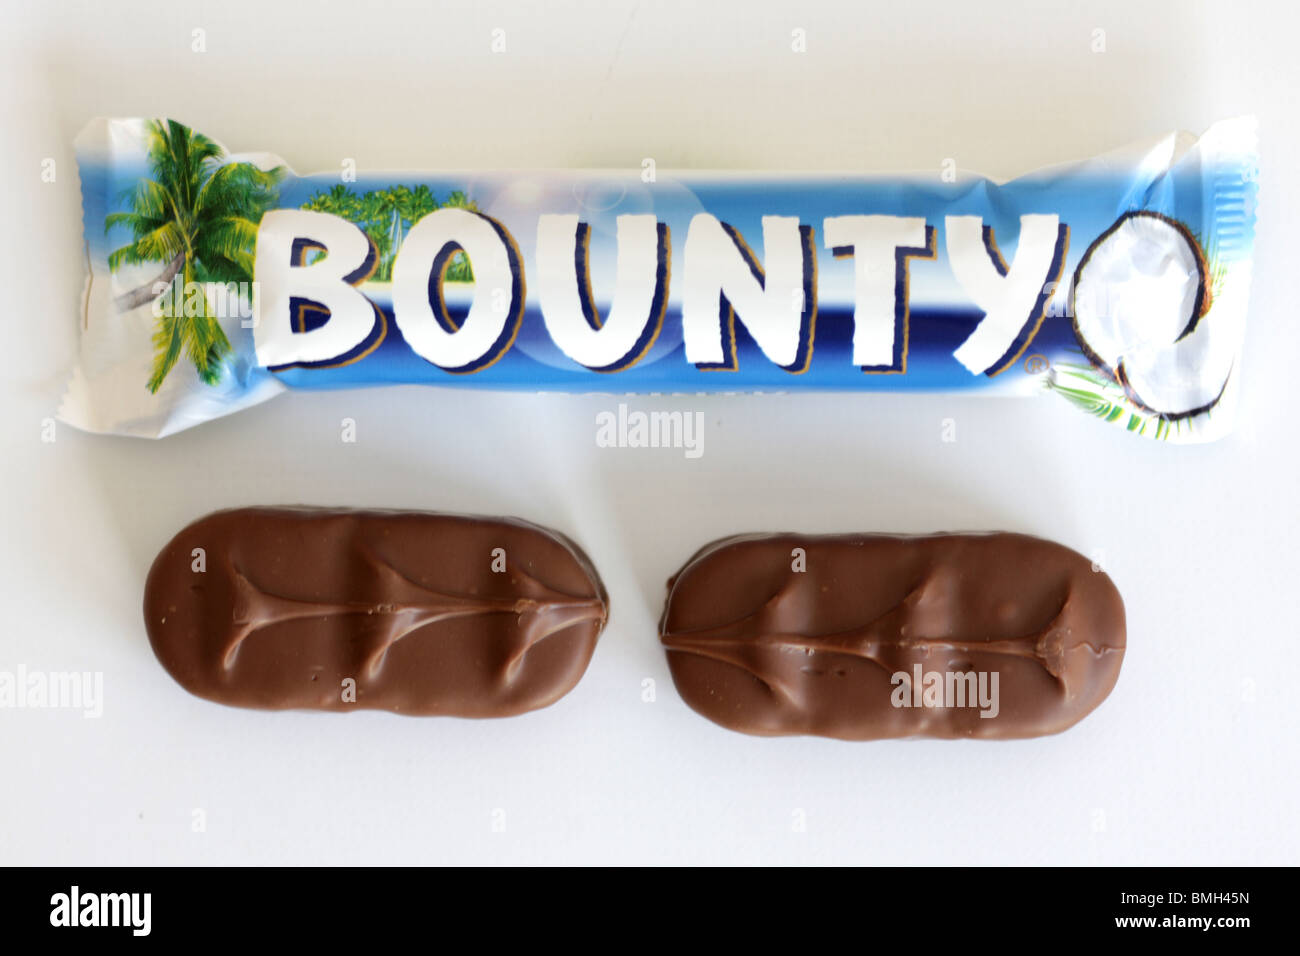 Bounty - chocolate with a piece of paradise 89